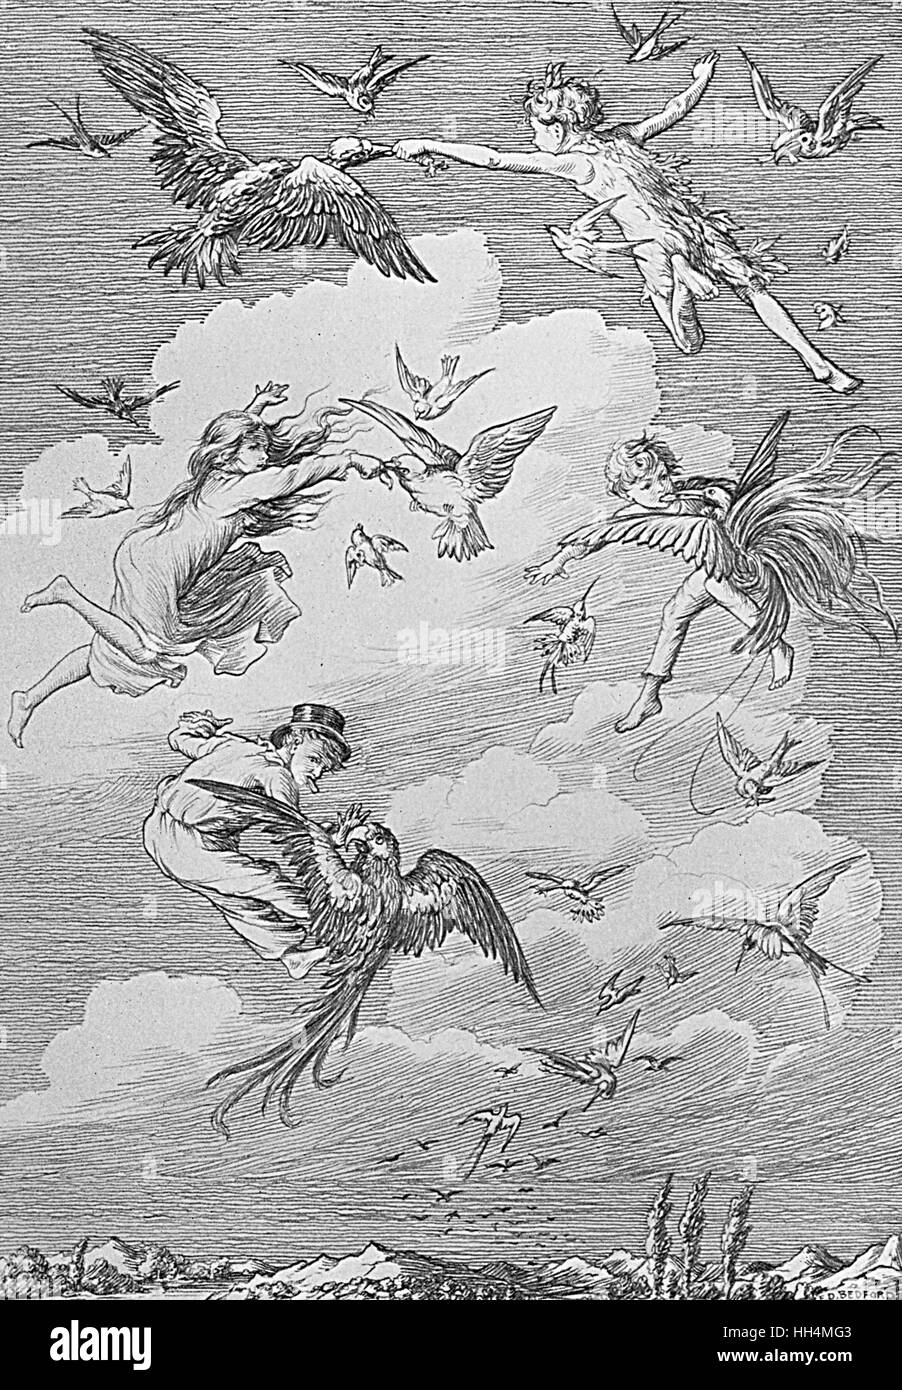 Peter Pan and the Darling children flying with the birds, on their way to Neverland. The children learned from Peter - Stock Image